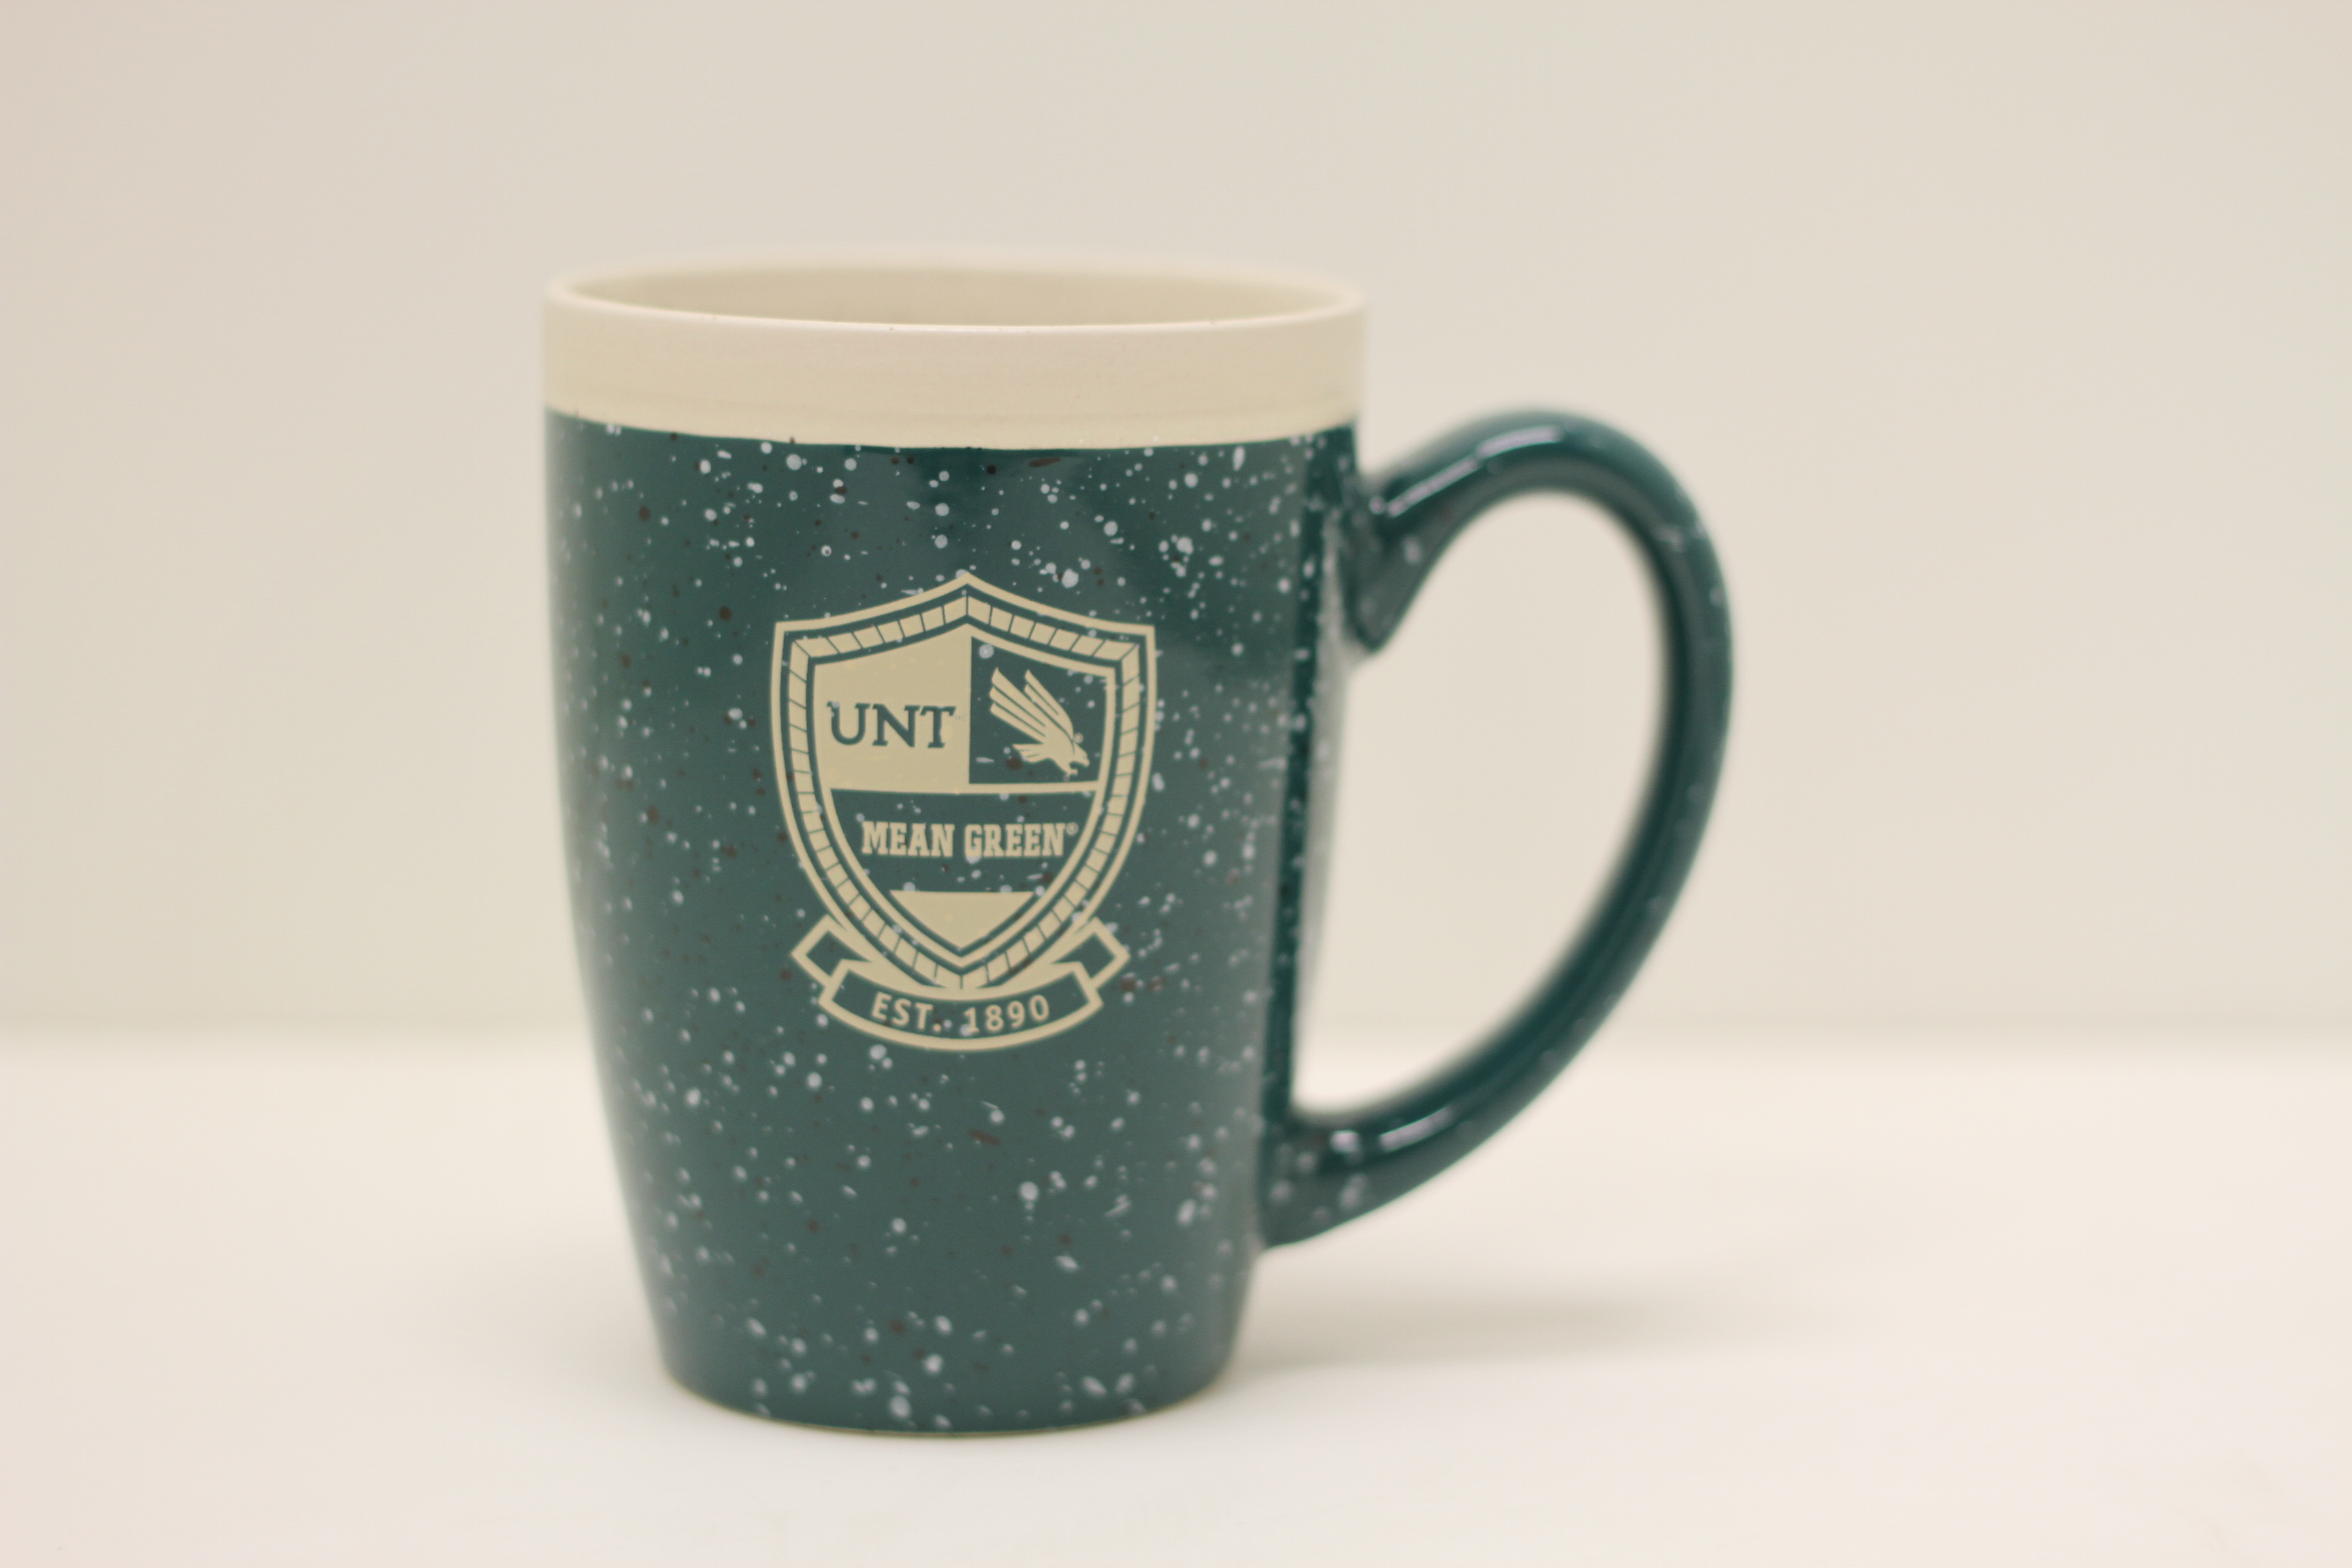 16 OZ. EVERGREEN ADOBE MUG